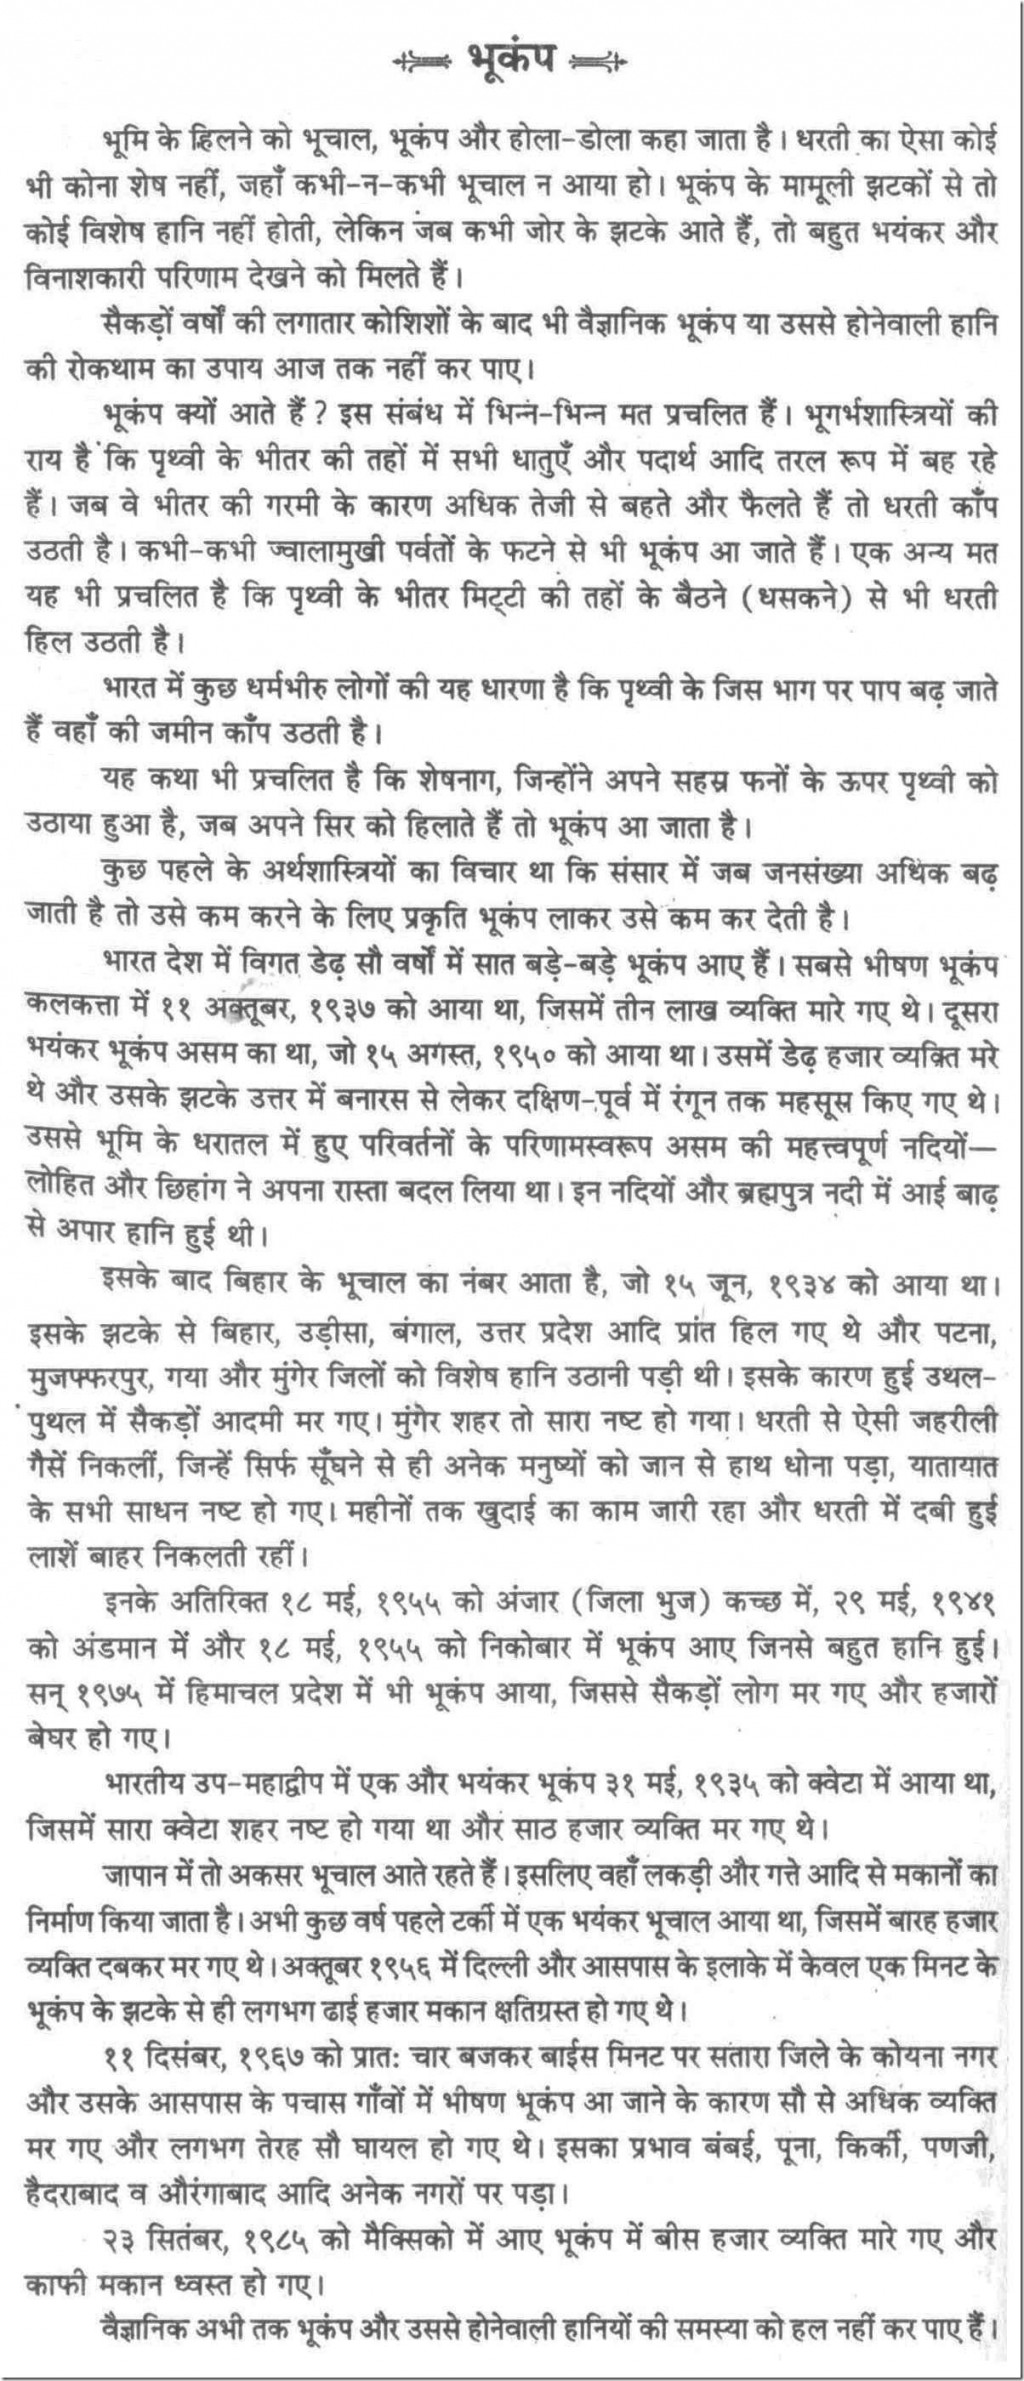 005 Essay Of Earthquake About In Questions For Students 1000115 School On Impressive Occurred India During 2011-12 English Hindi Large